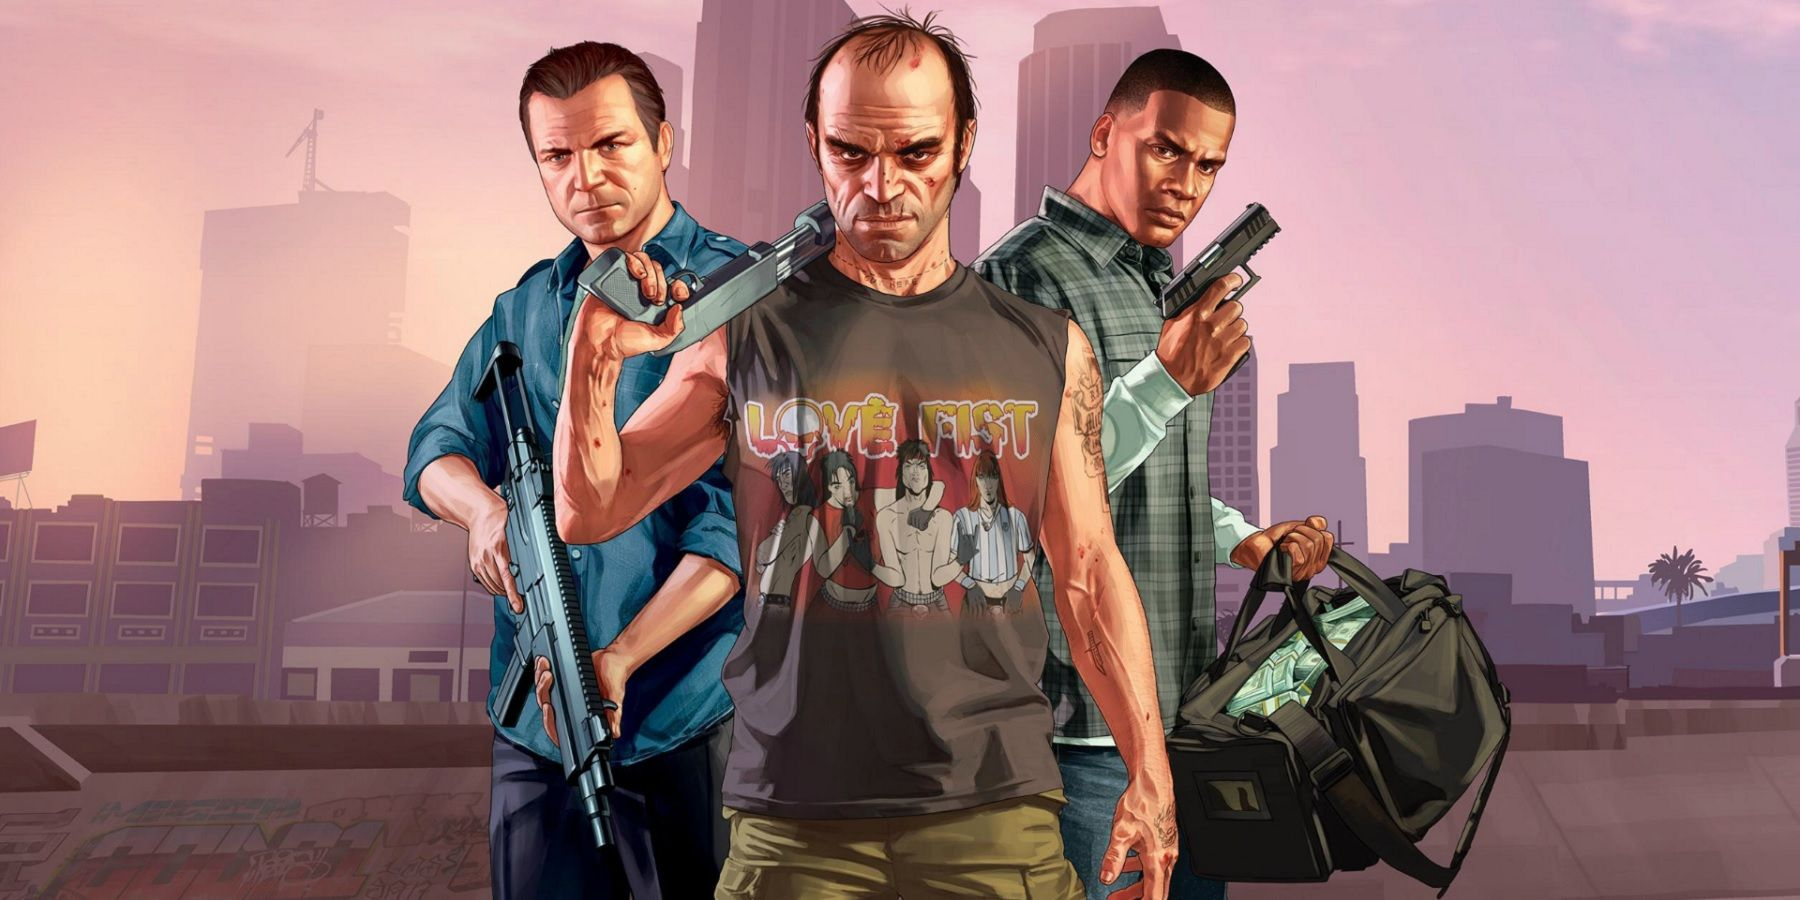 Some Grand Theft Auto Fans Think They've Spotted A GTA 6 Tease in the New Trailer